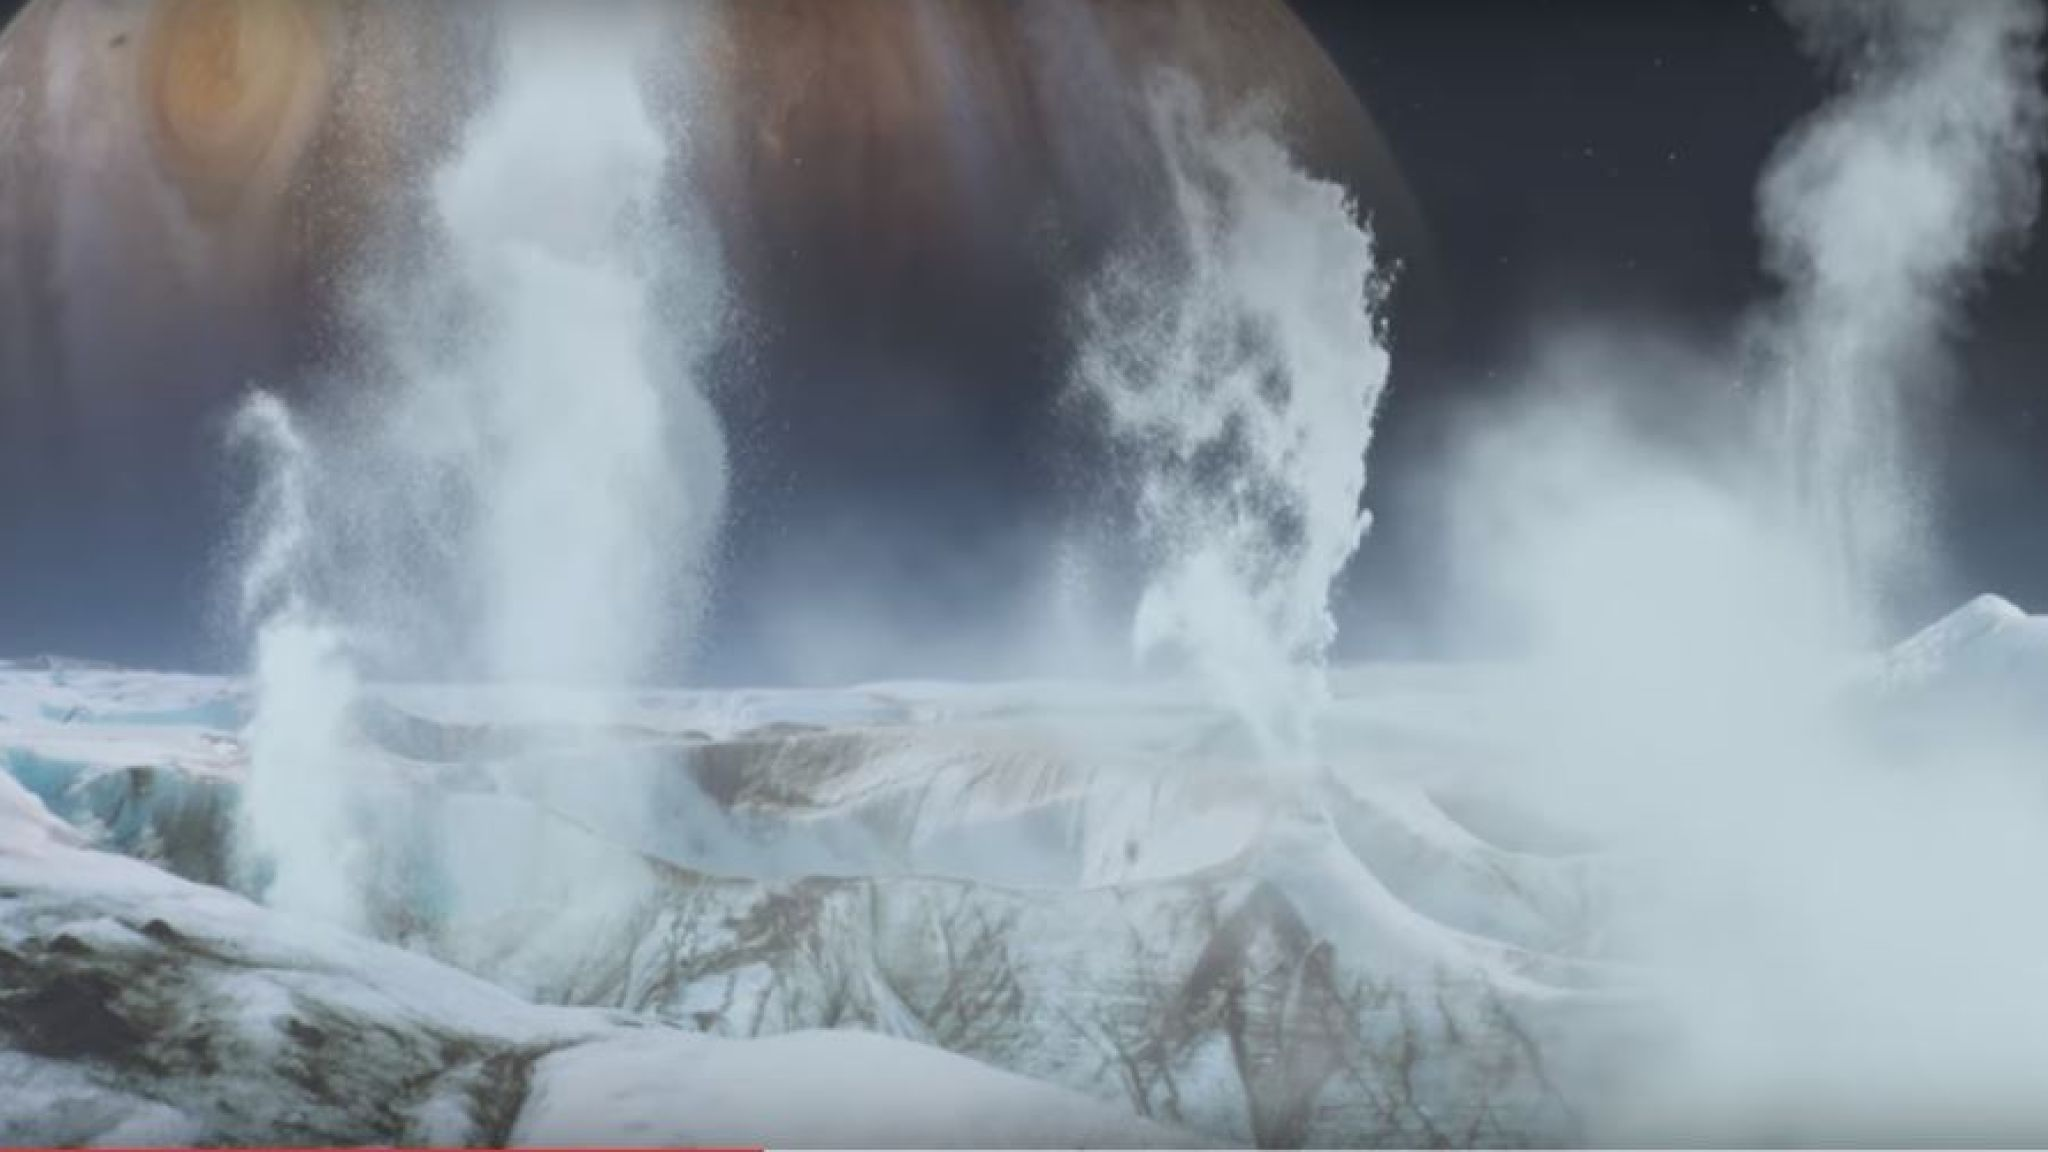 Astronomers have previously seen what were believed to be plumes of water shooting up from the surface